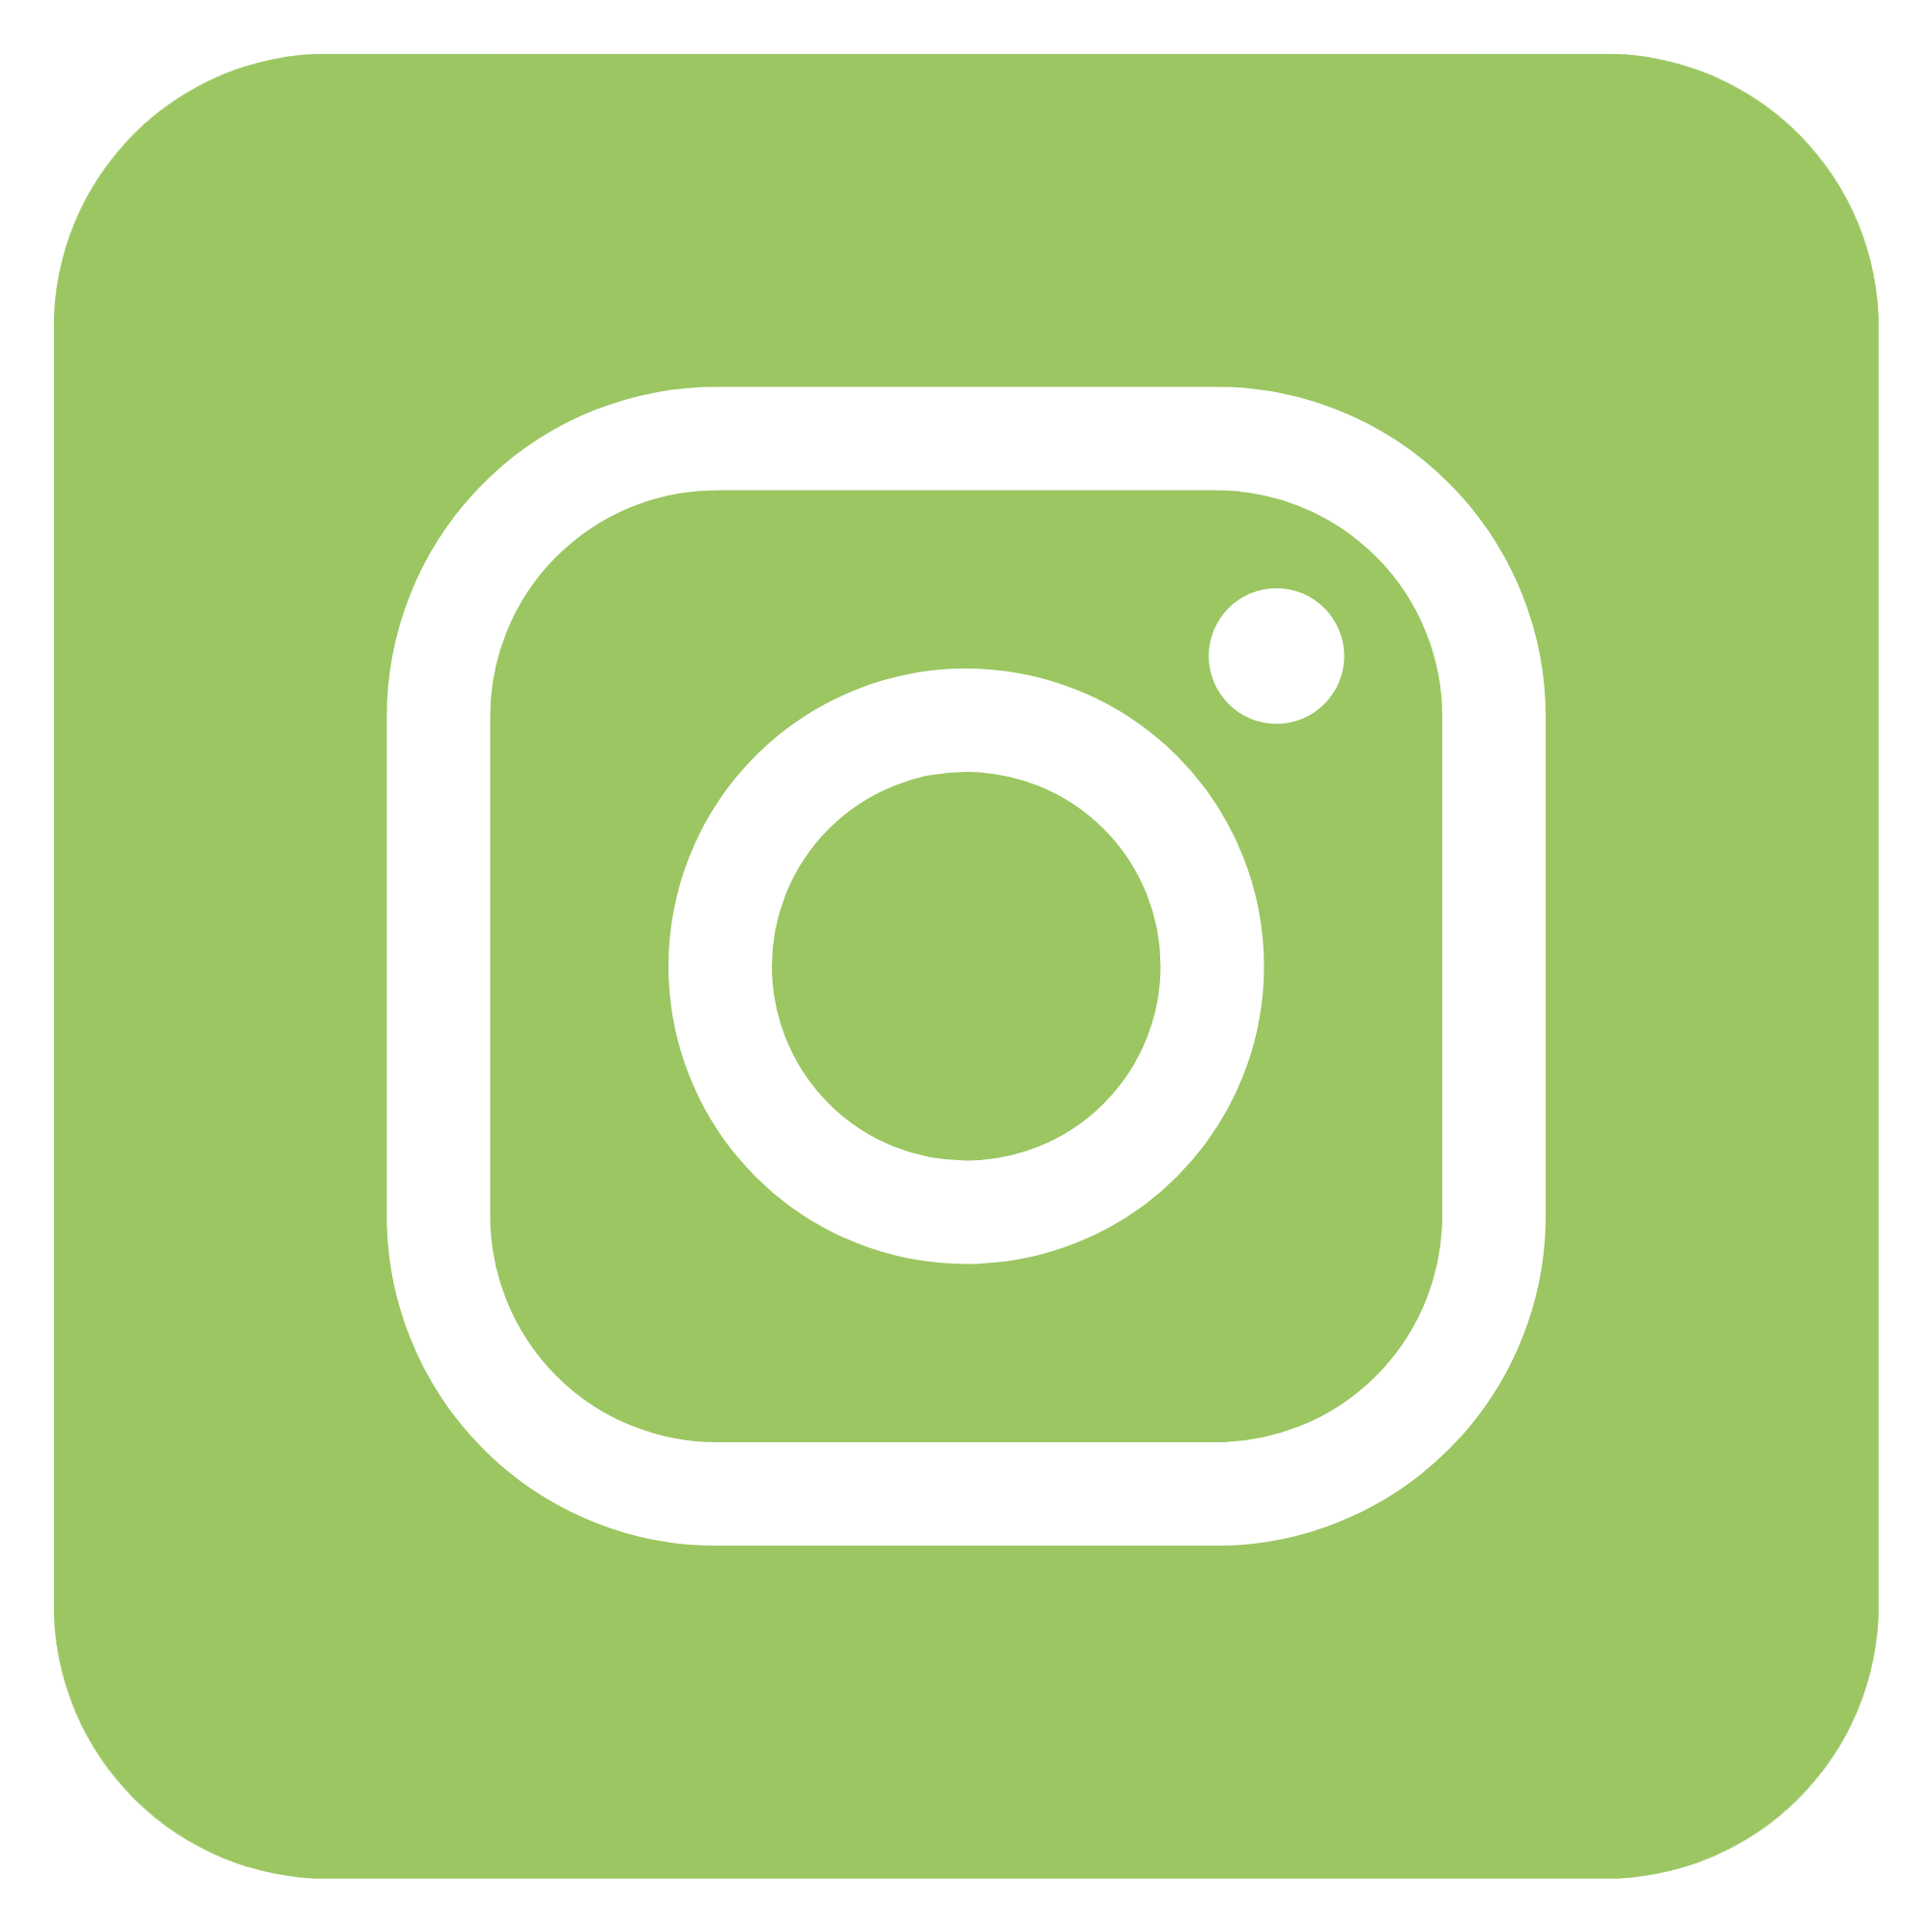 Icon Instagram green